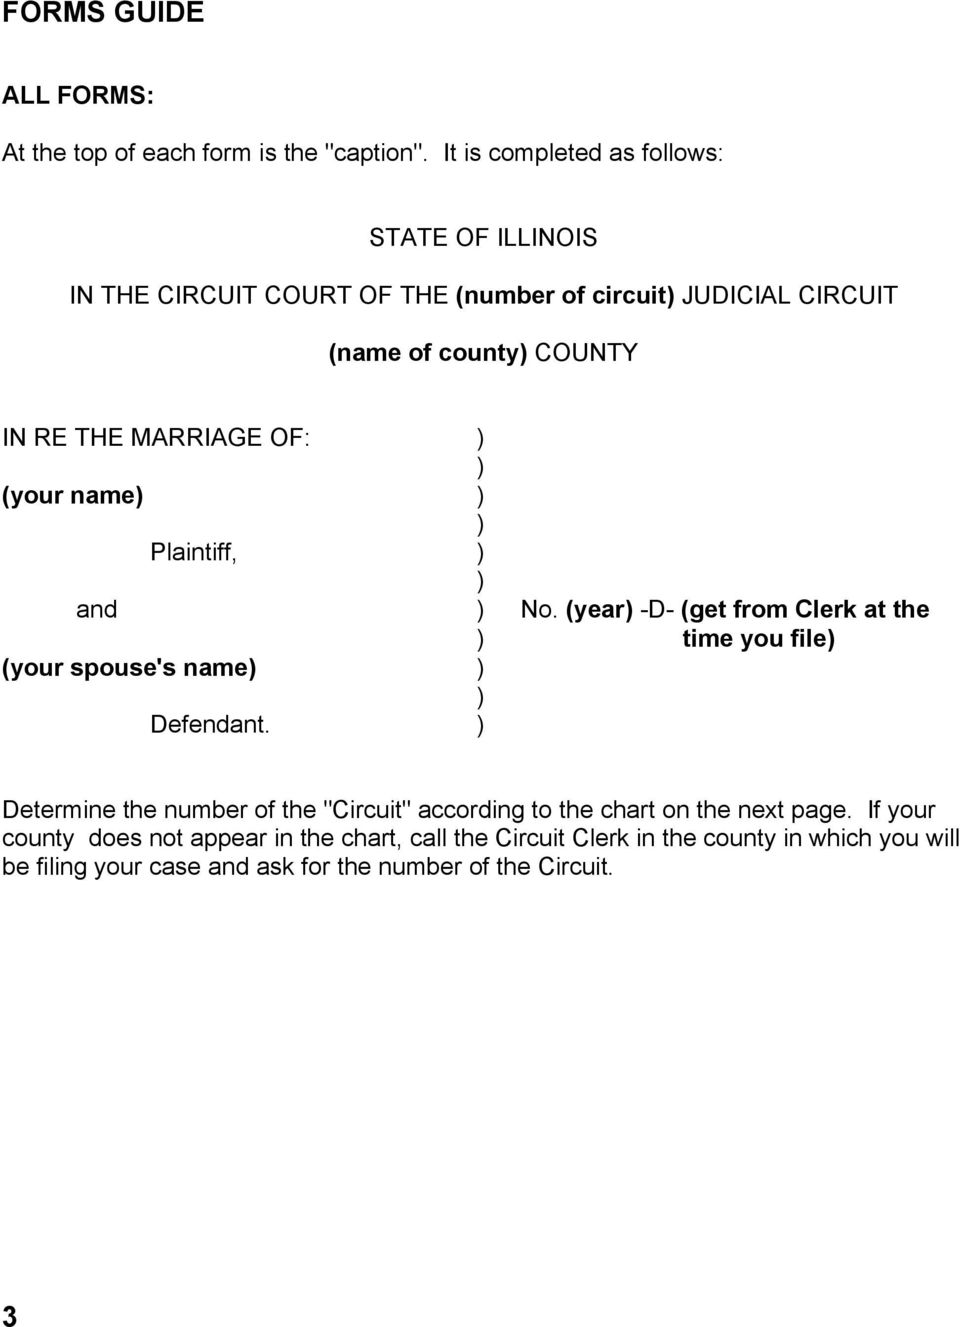 THE MARRIAGE OF: (your name Plaintiff, and No. (year -D- (get from Clerk at the time you file (your spouse's name Defendant.